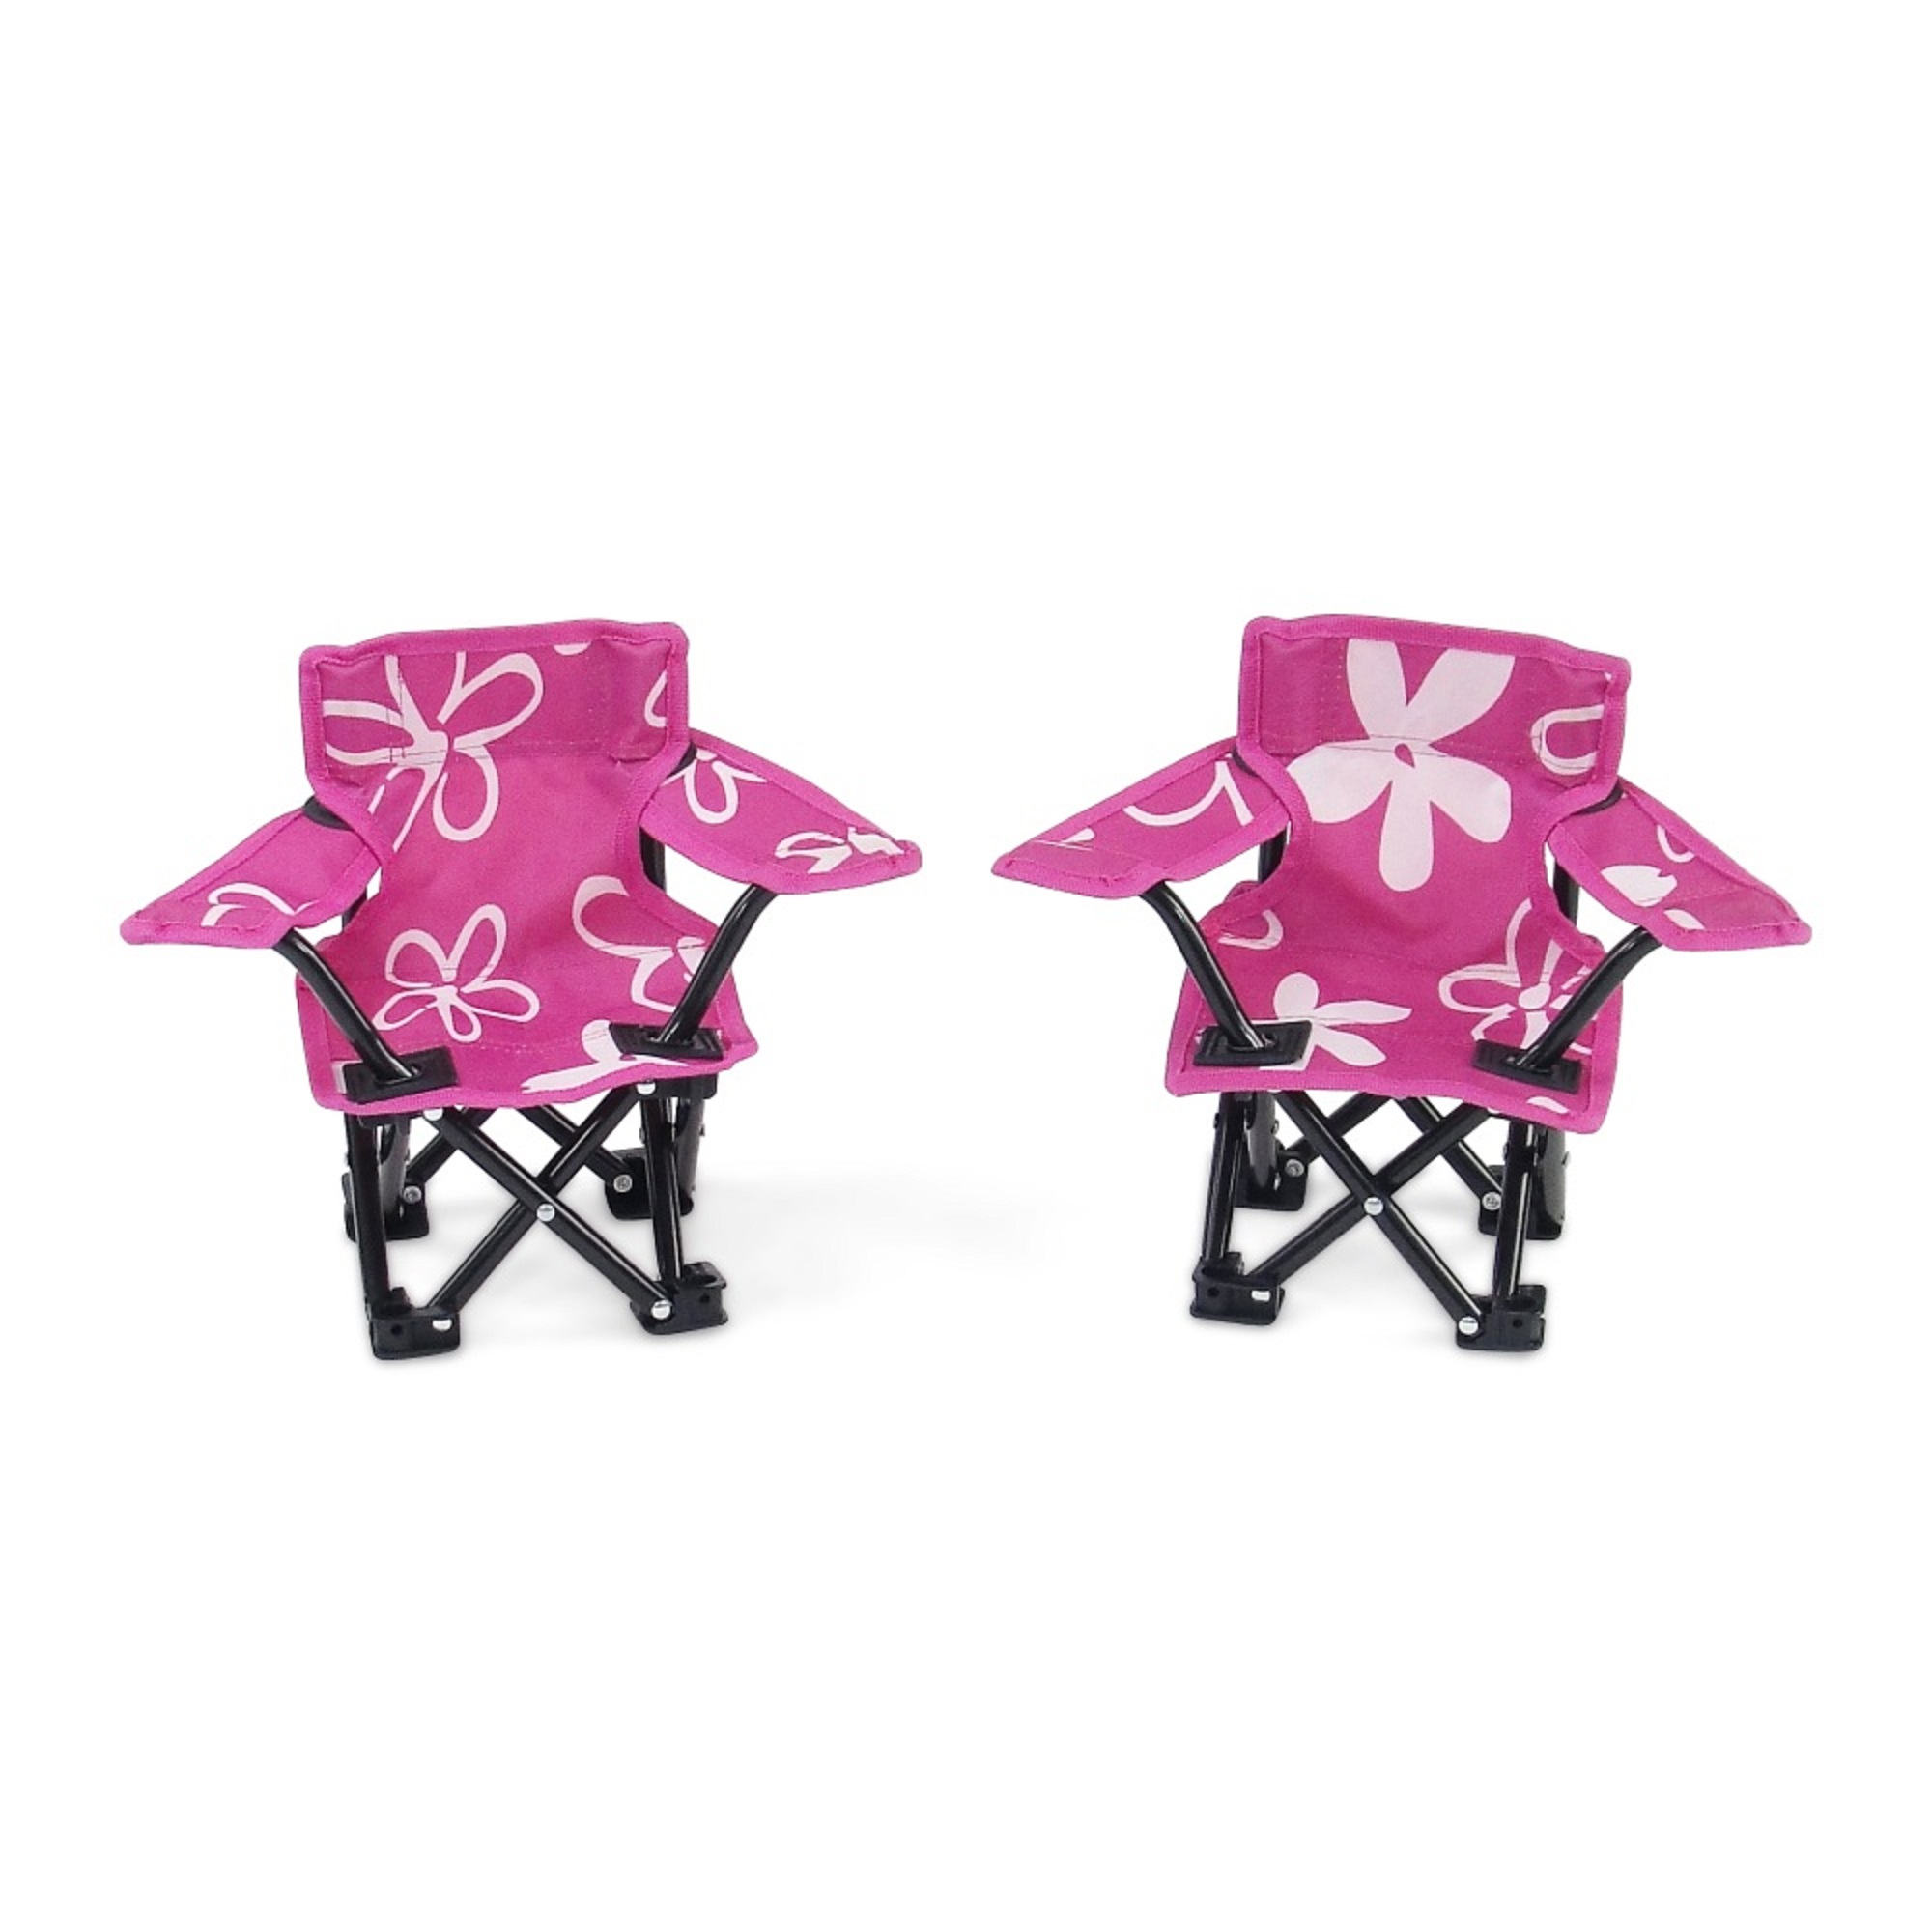 18 Inch Doll Accessories | Awesome Pink and White Flowered Camping Sports Chairs, includes... by Emily Rose Doll Clothes